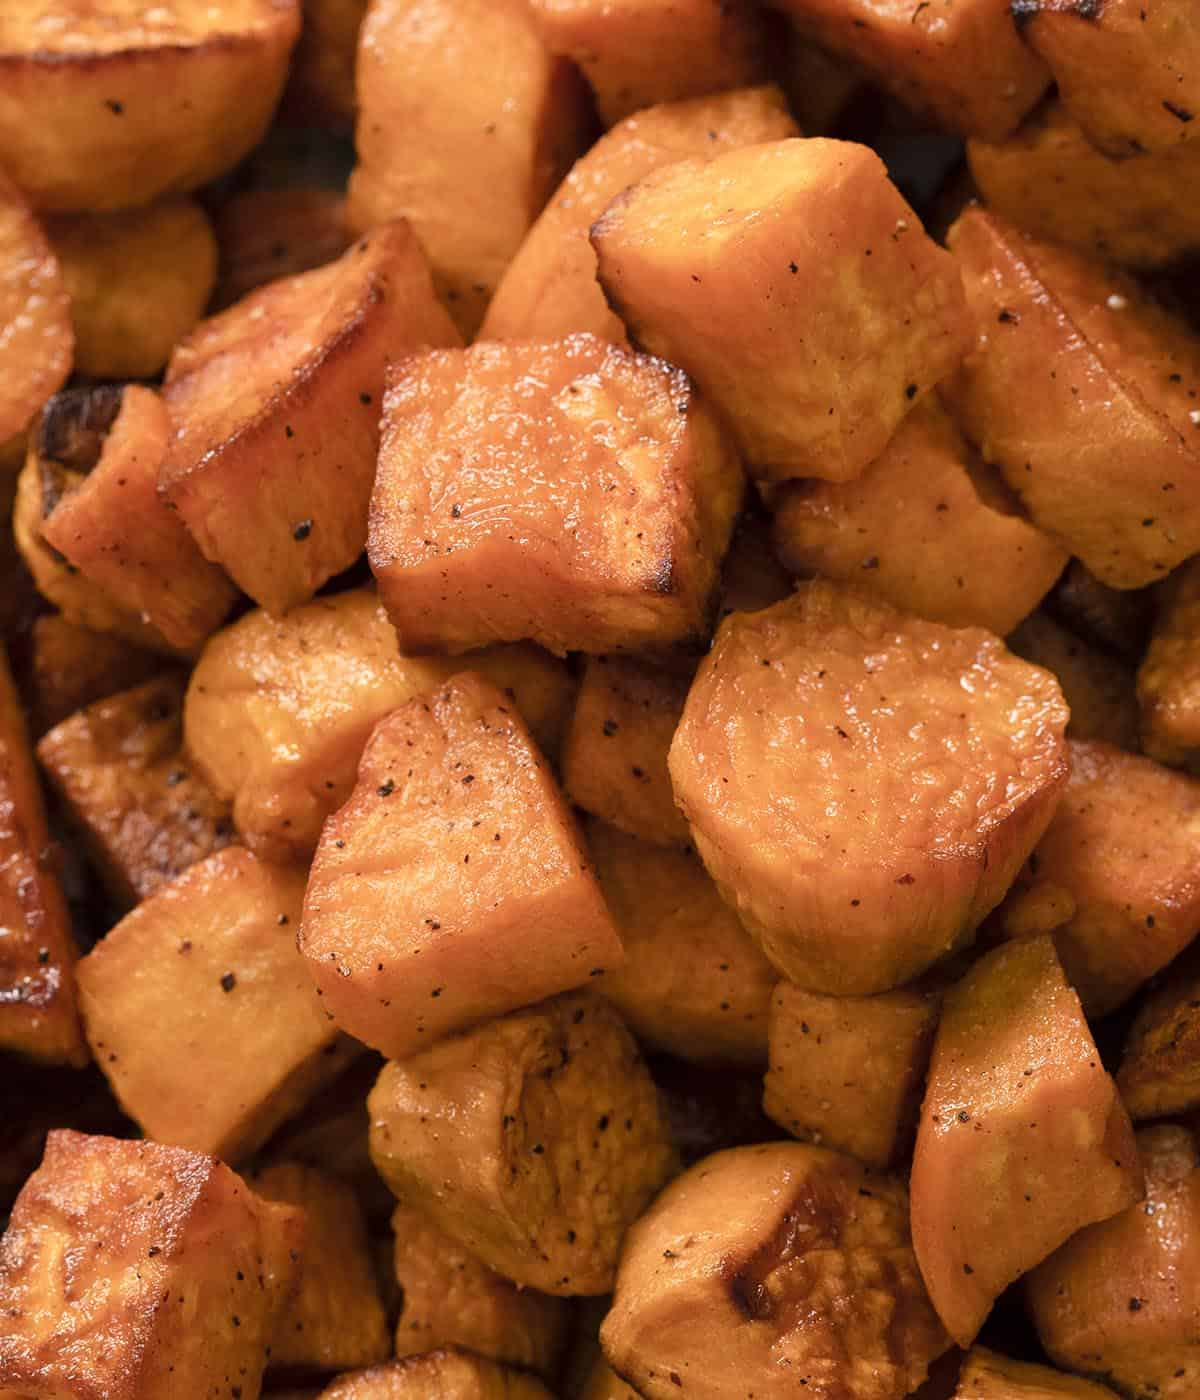 A close up photo of a group of roasted sweet potatoes.